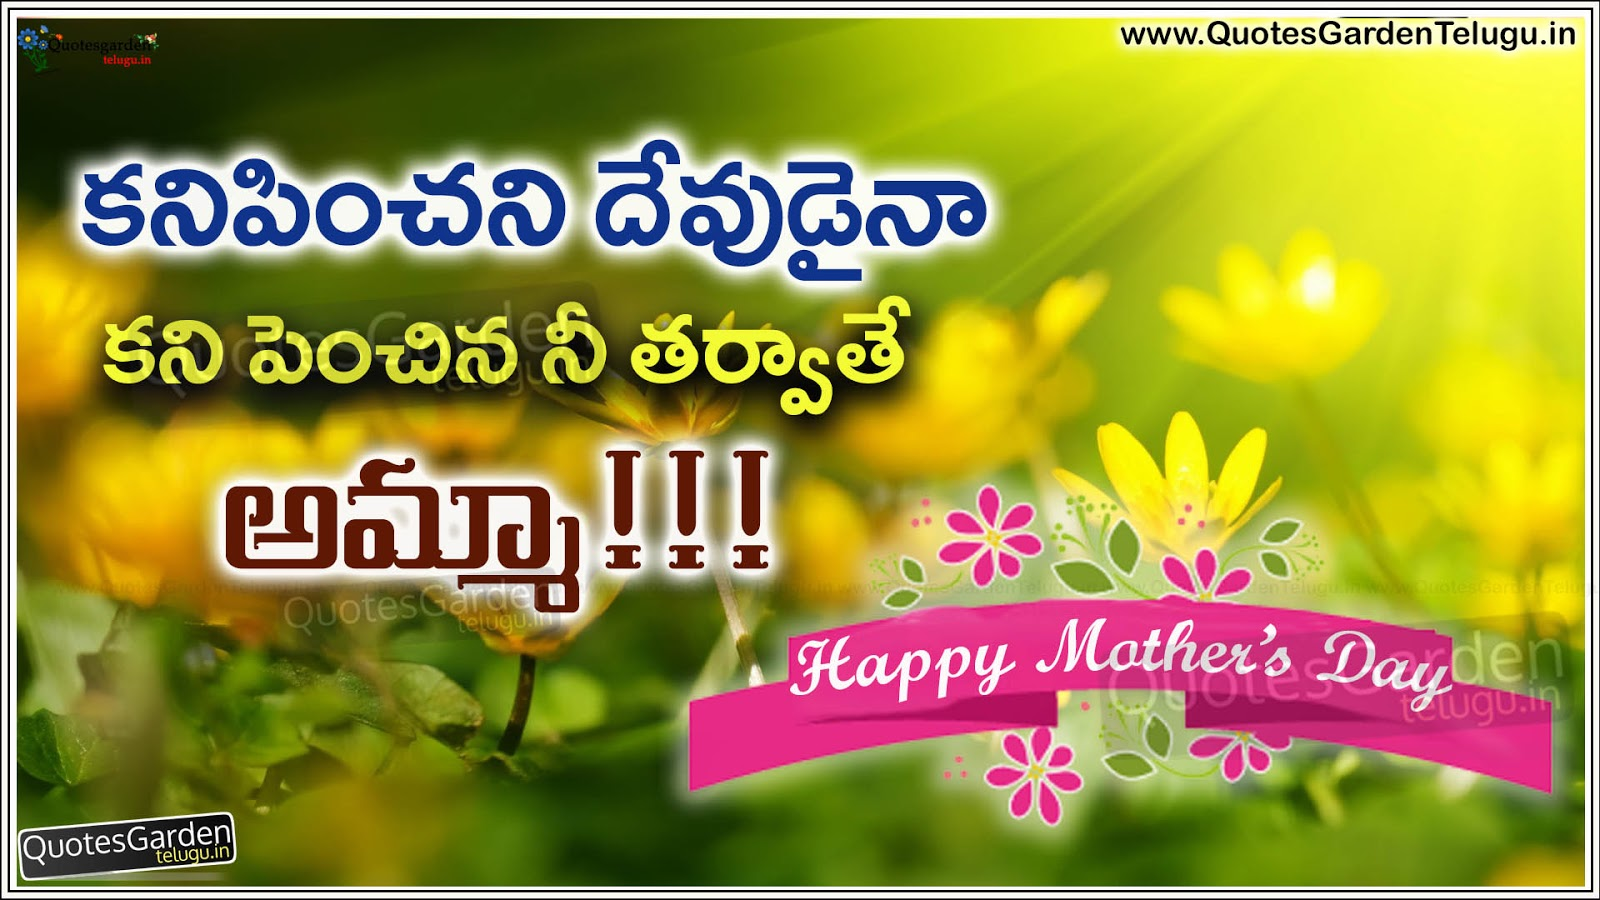 Telugu Mothers Day 2016 Greetings Quotes Messages Quotes Garden